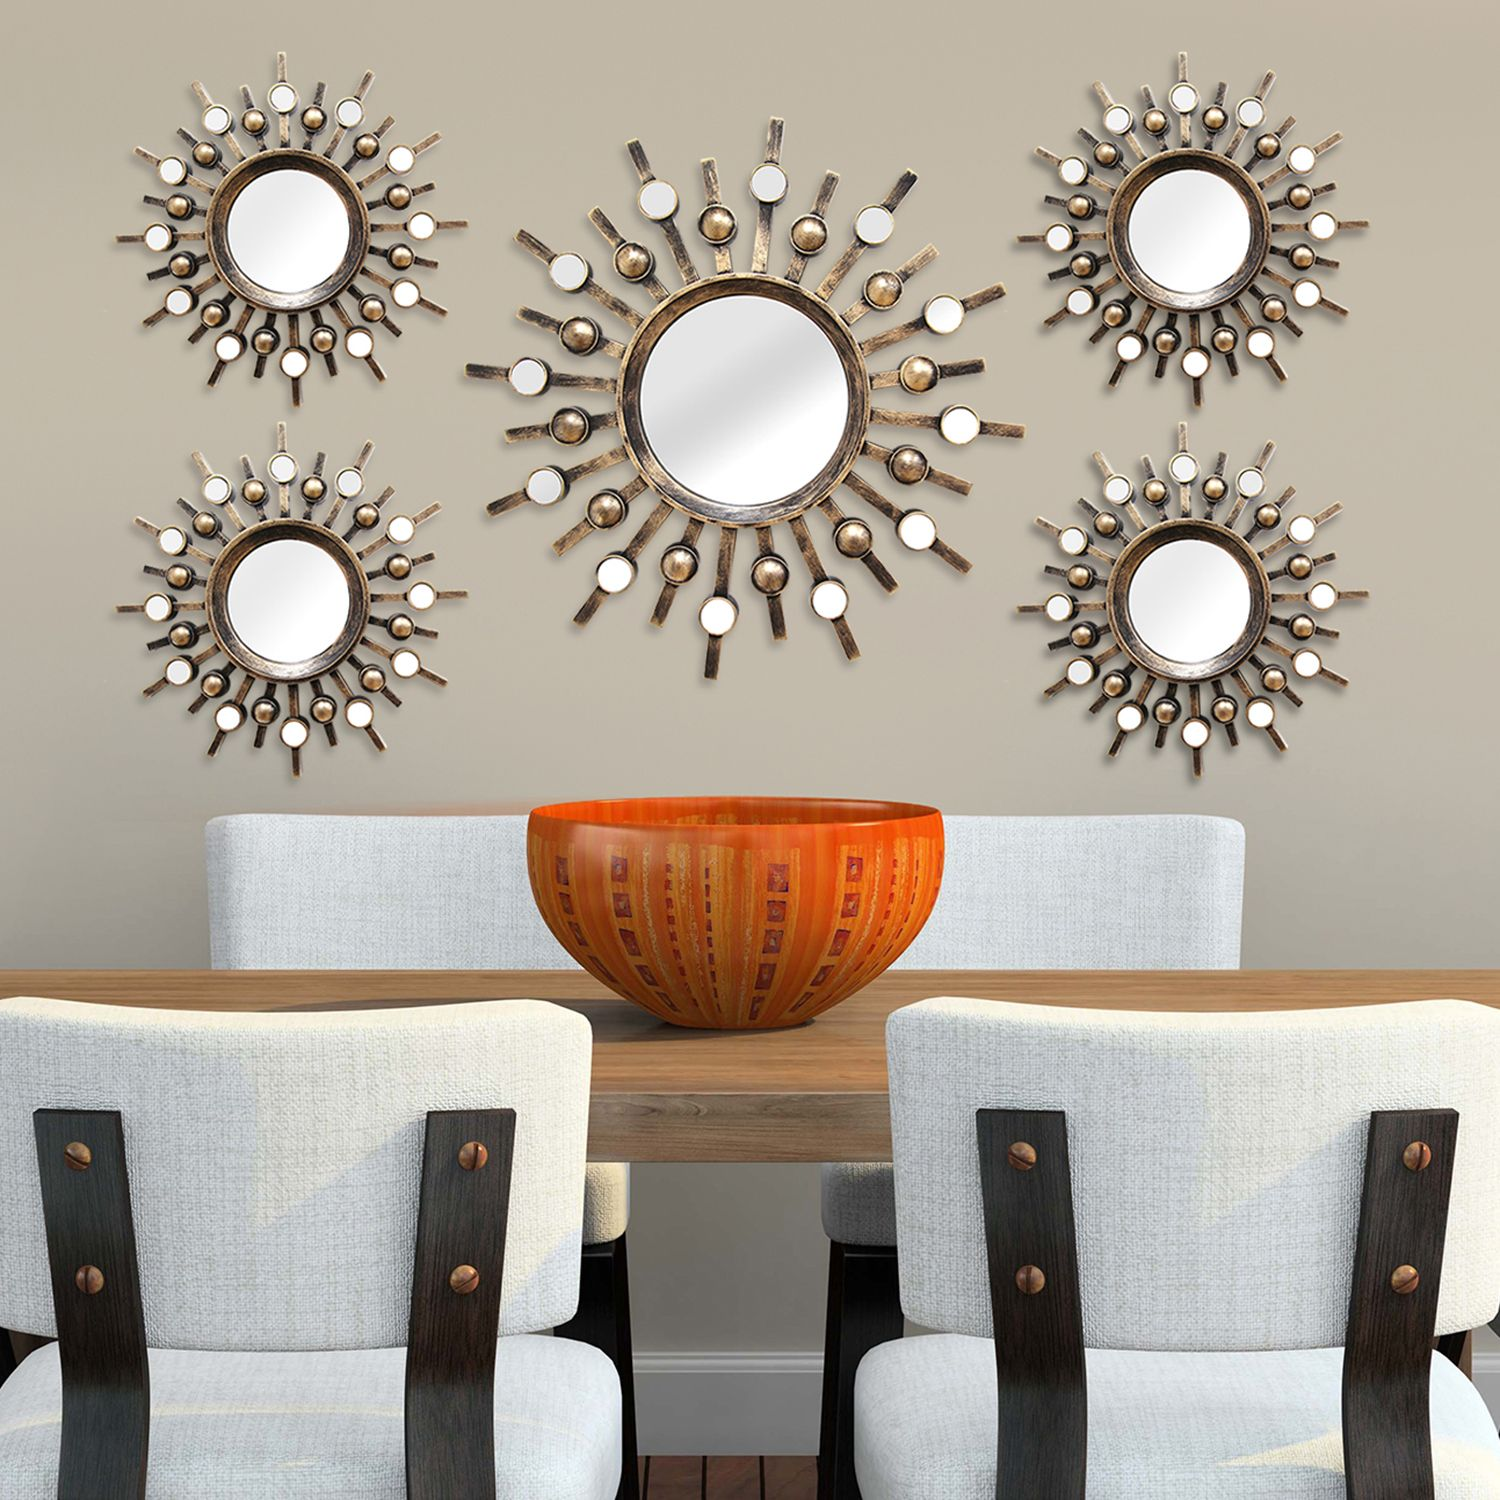 & Stratton Home Decor Sunburst Mirror Metal Wall Art 5-piece Set